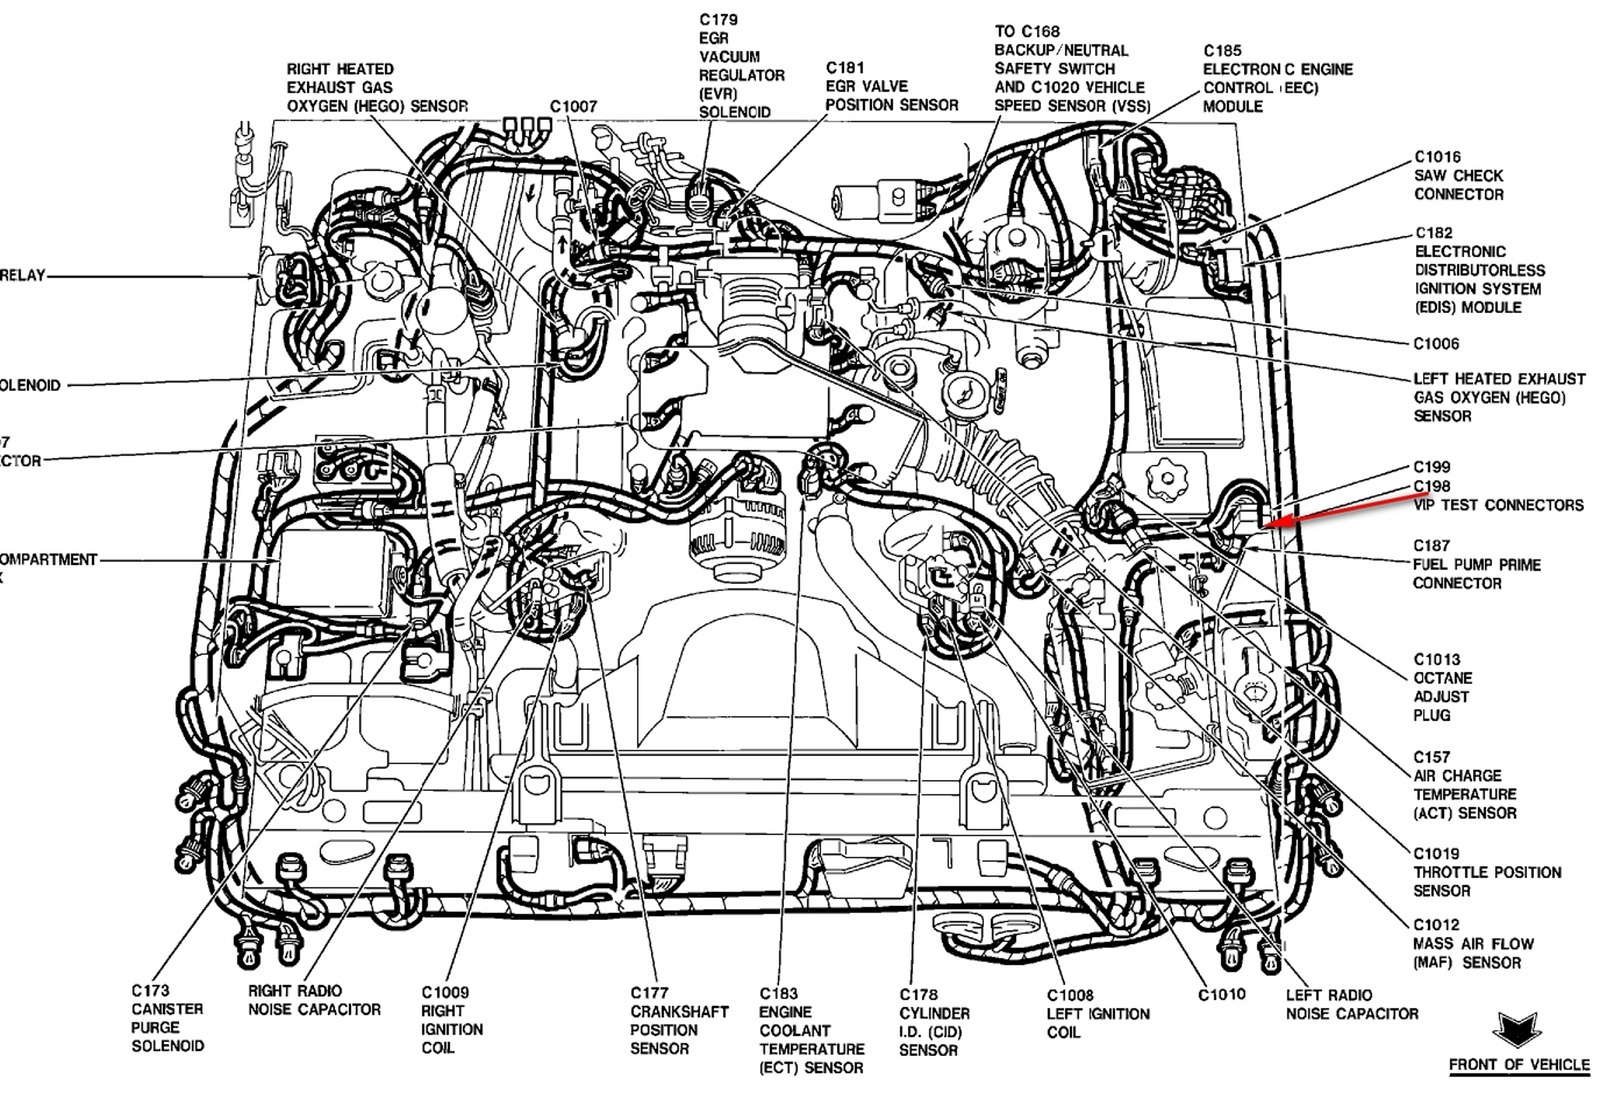 1994 Buick Lesabre Fuse Block Diagram Wiring Library For 1999 Century Box Location Images Gallery